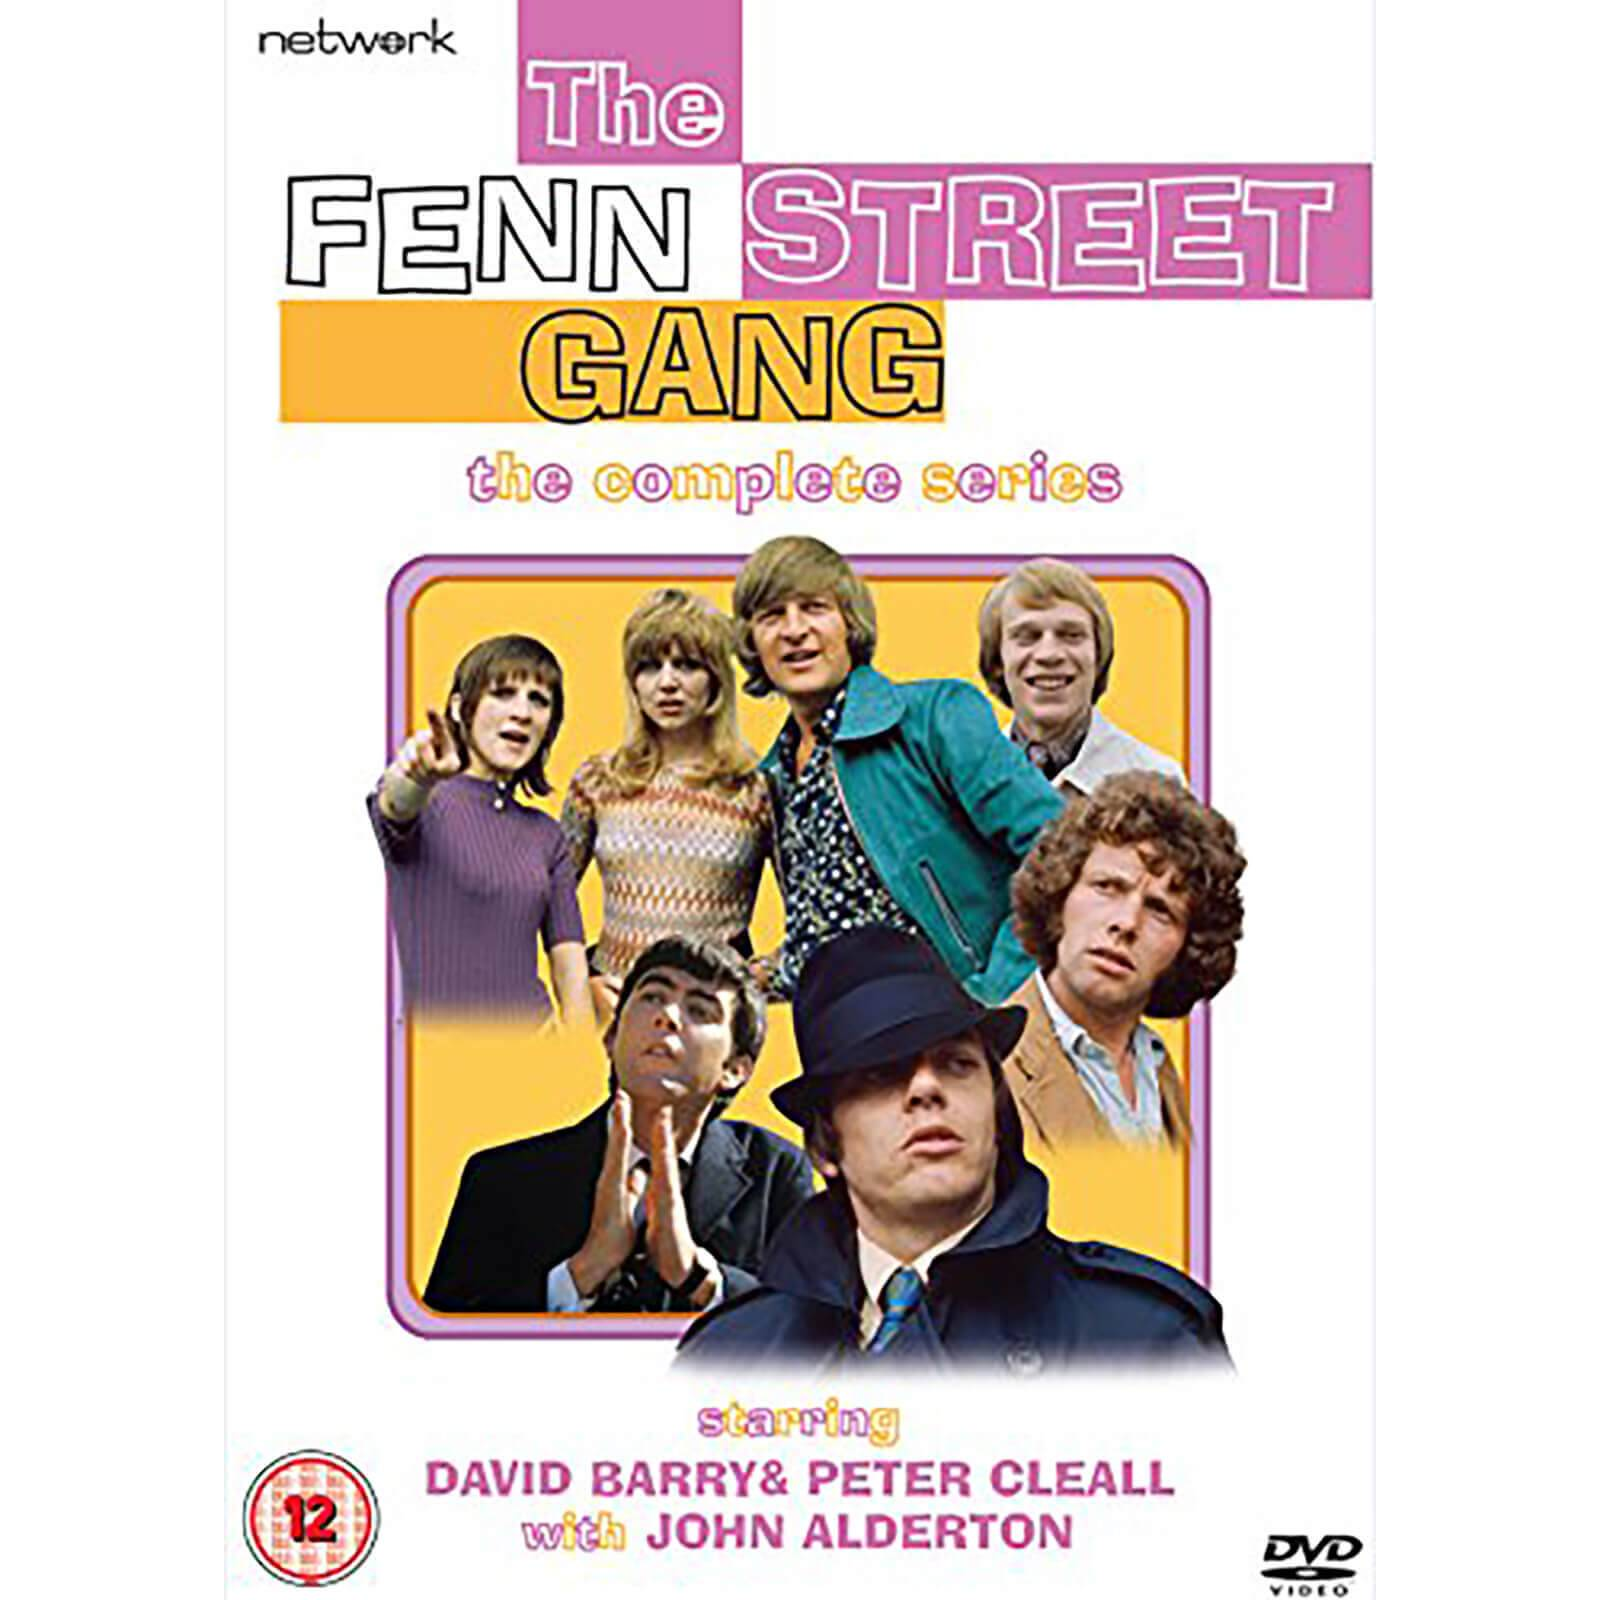 Network The Fenn Street Gang: The Complete Series